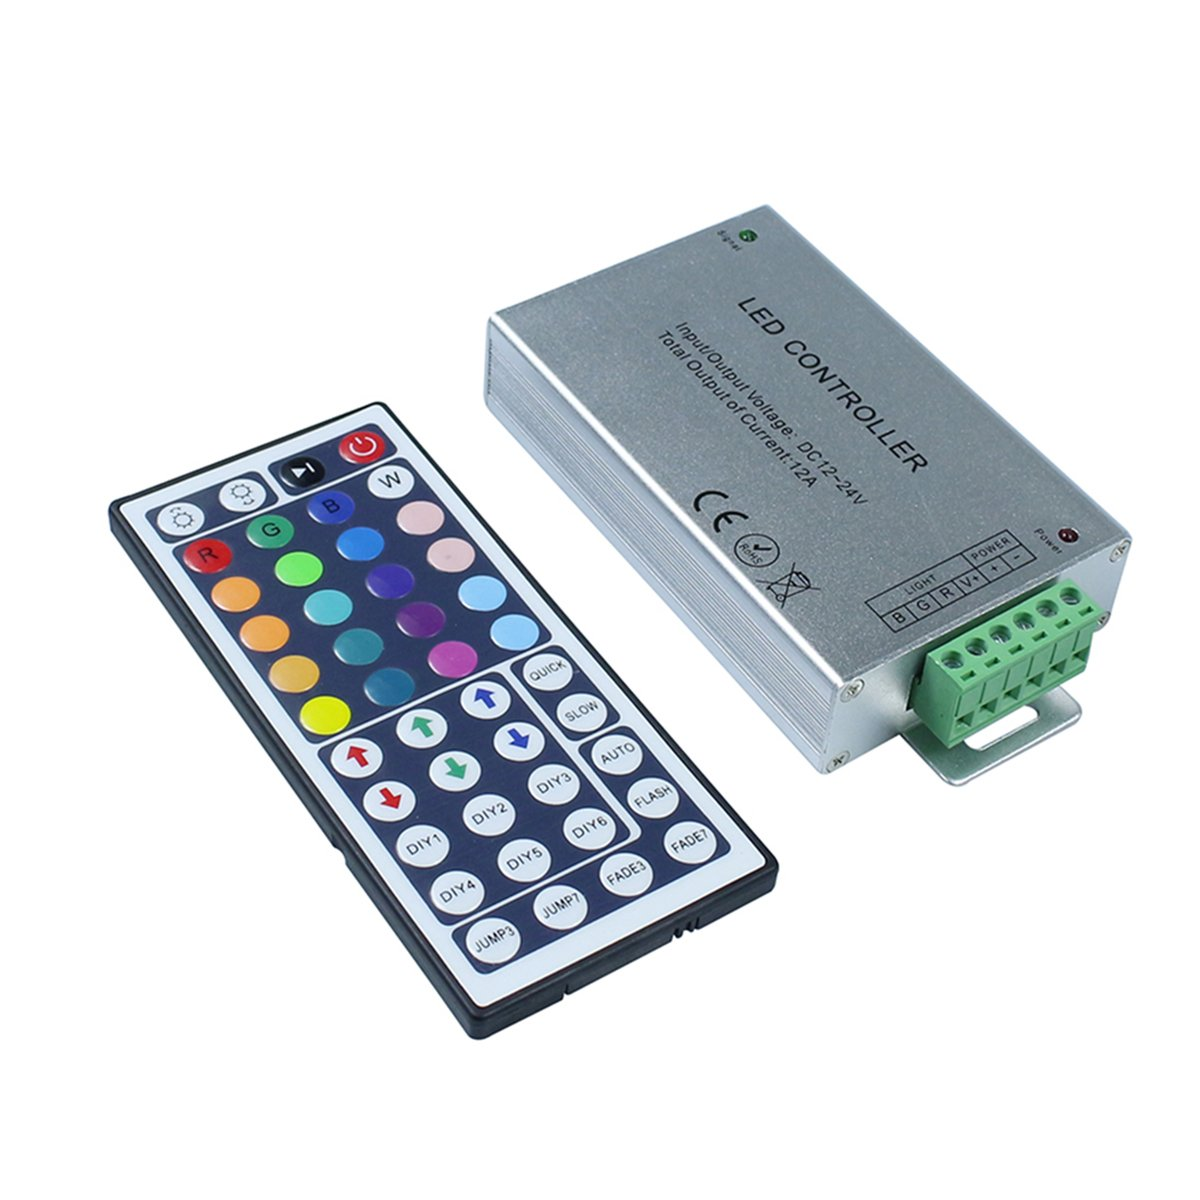 KPBOTL DC12-24V 12A RGB led controller, IR controller with 44 Key Remote control,Aluminum light controller for 3528 5050 RGB led strips by KPBOTL (Image #1)